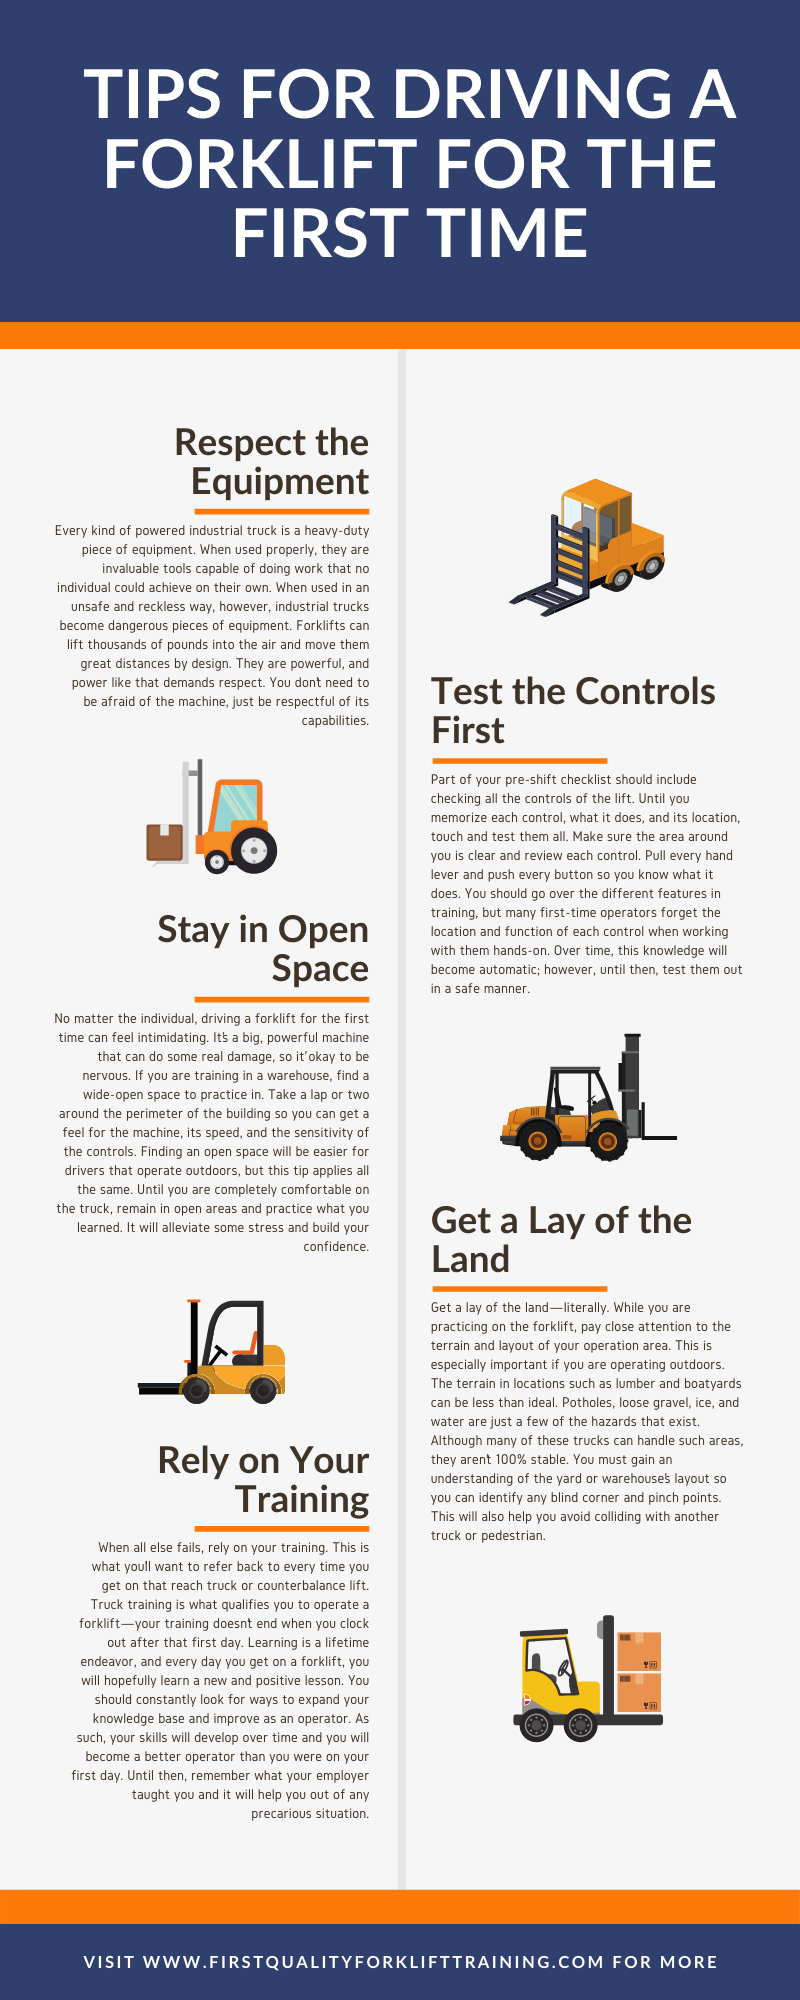 Driving a Forklift Tips